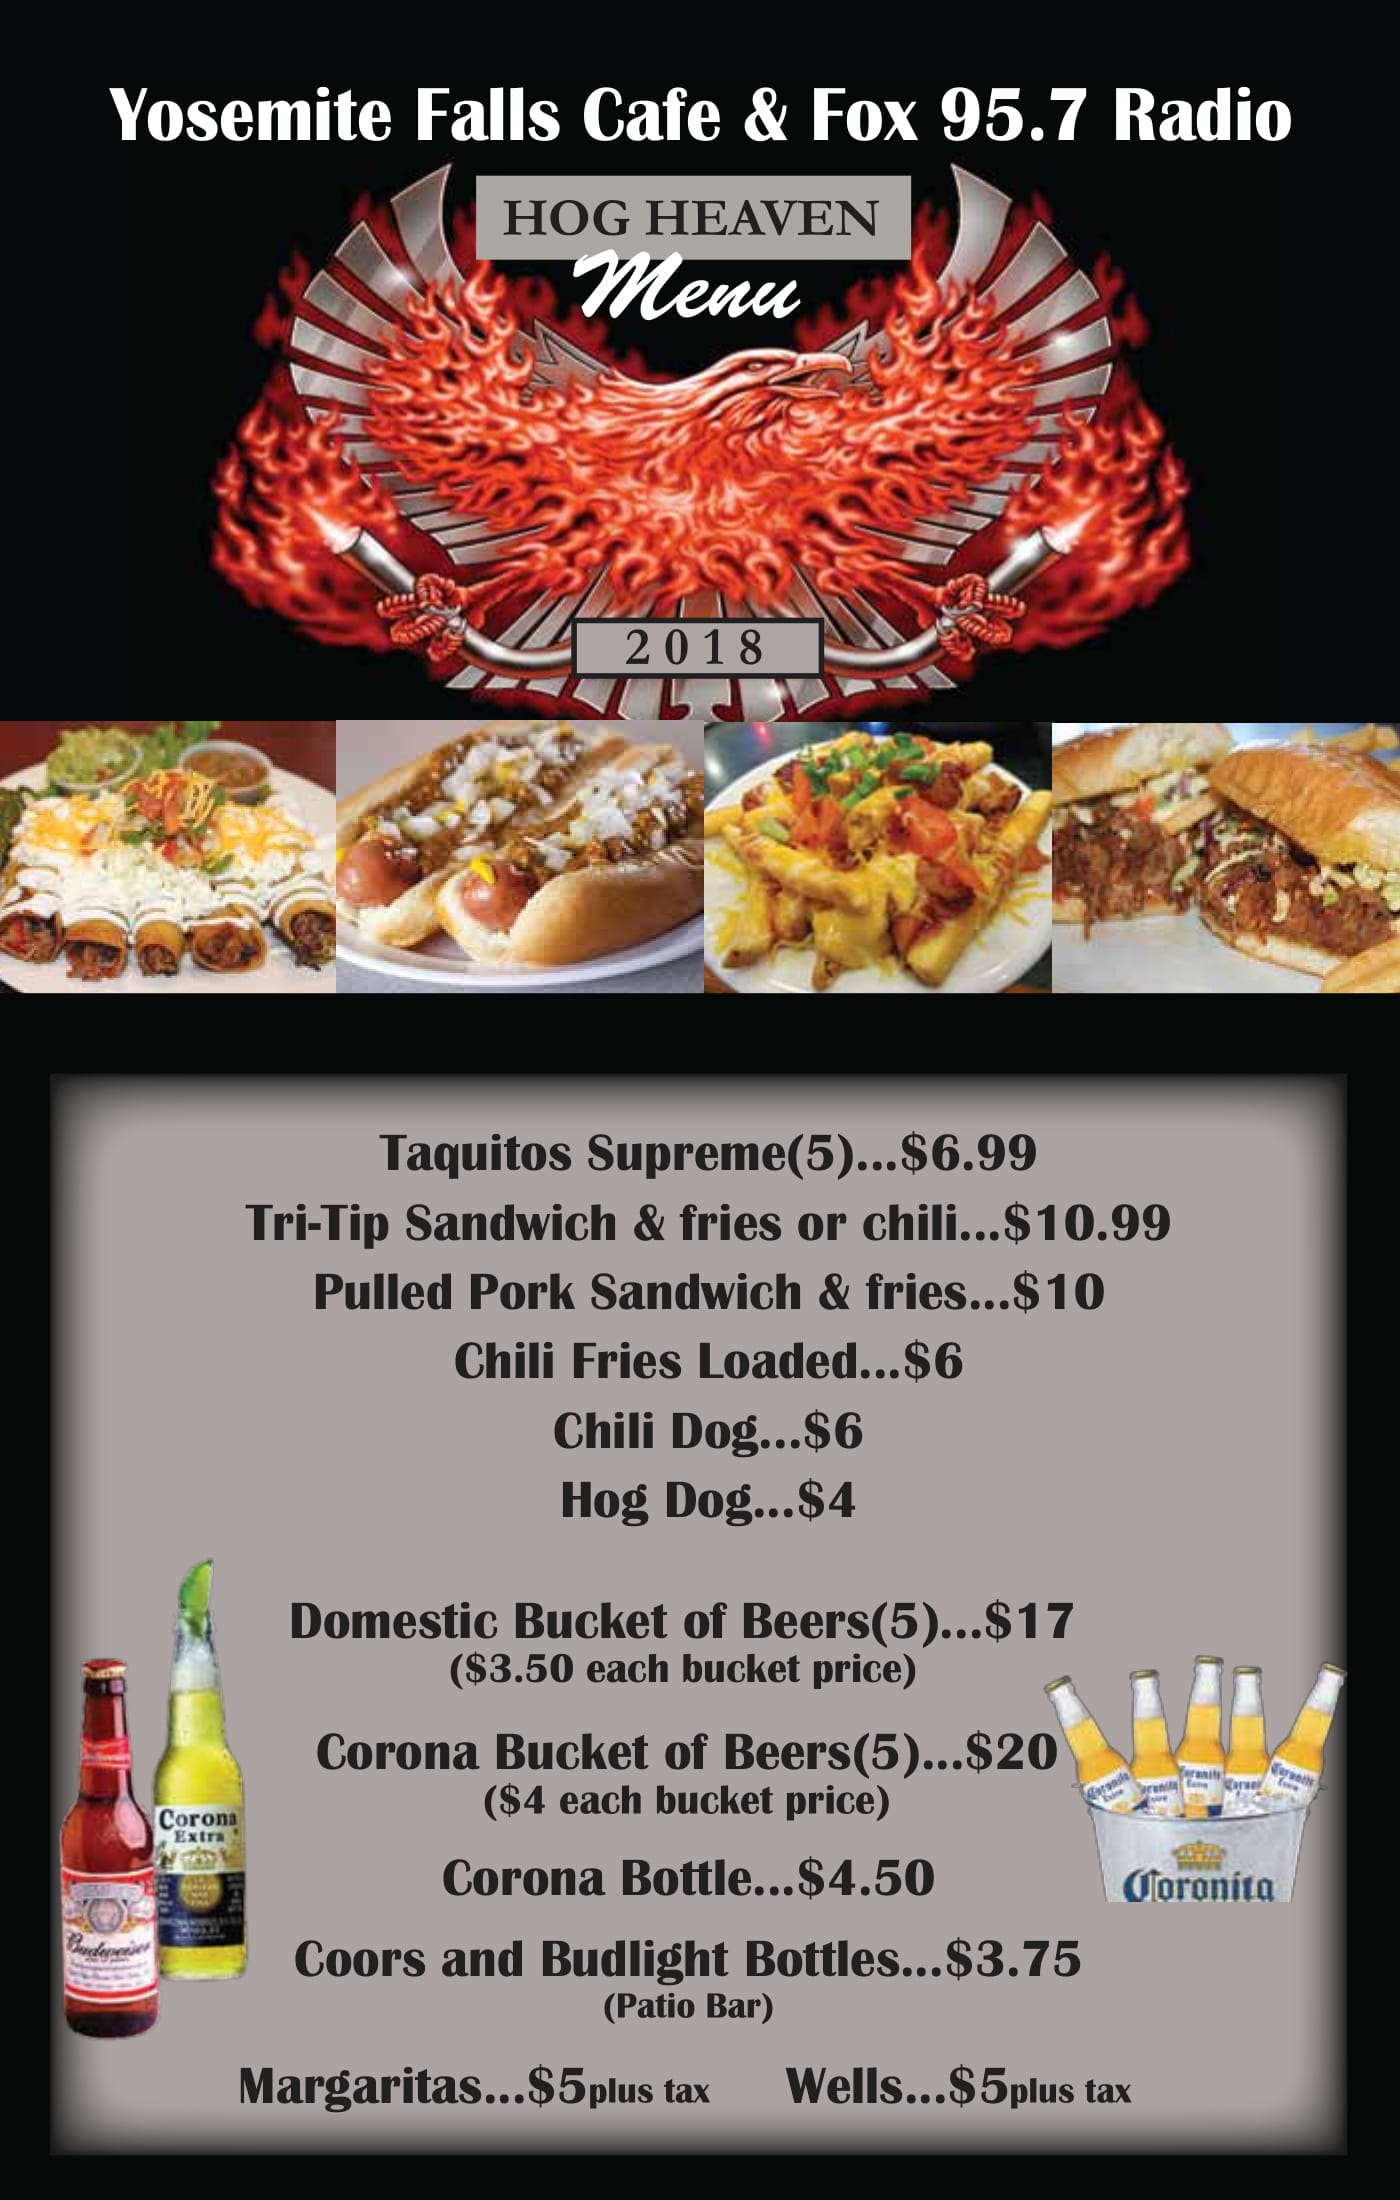 Hog Heaven menu 2018 FINAL[757]-1.jpg